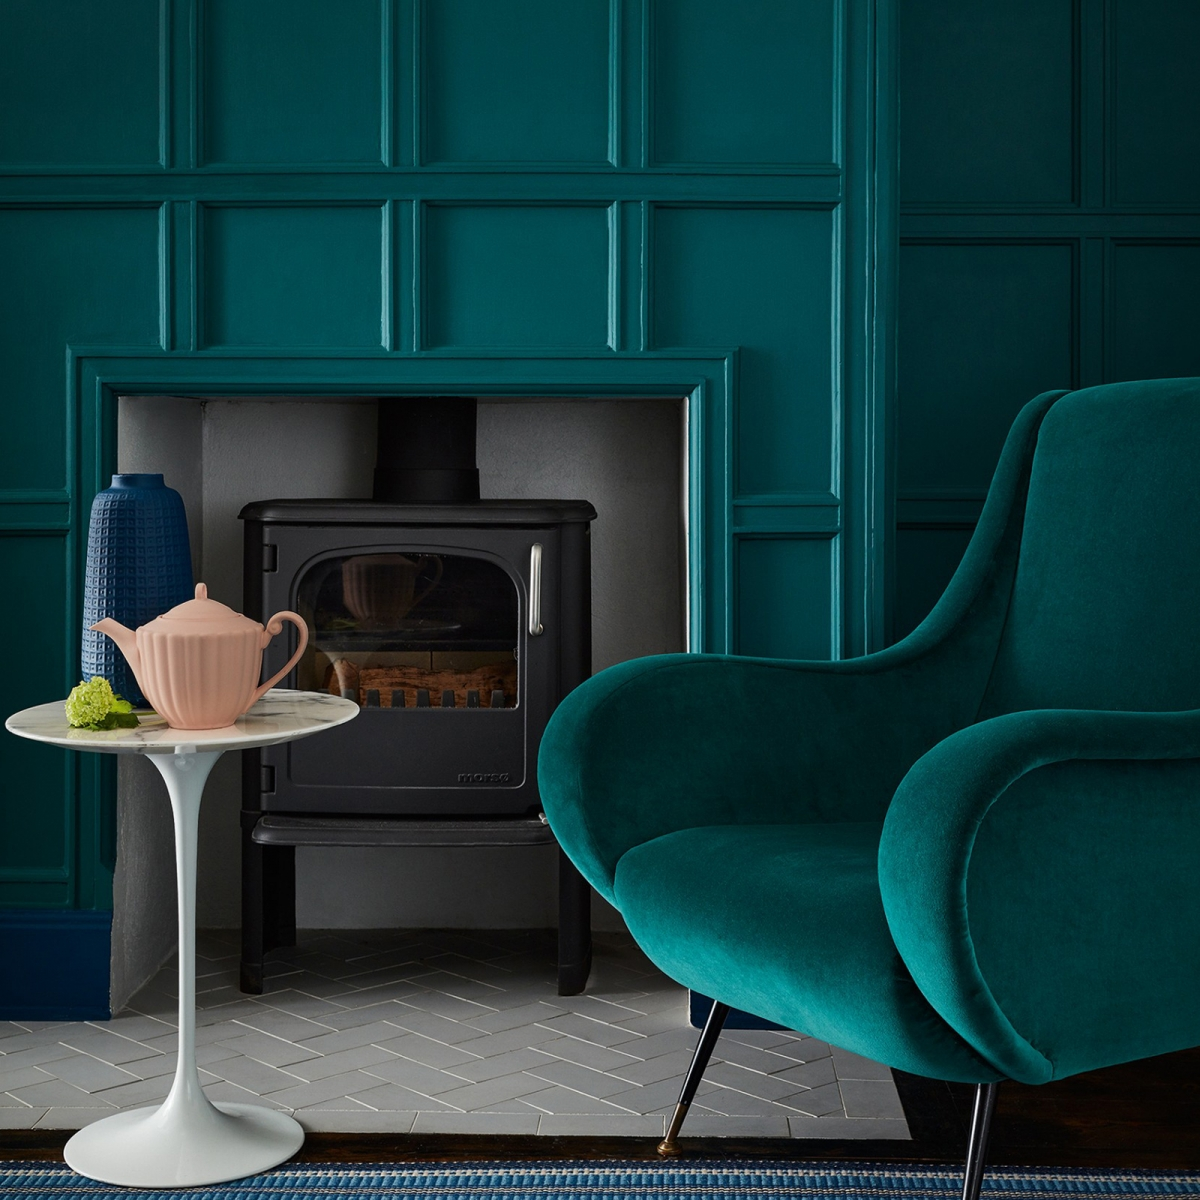 interior designer sophie robinson shows you how to decorate with teal, painted panelled wall and velvet armchair